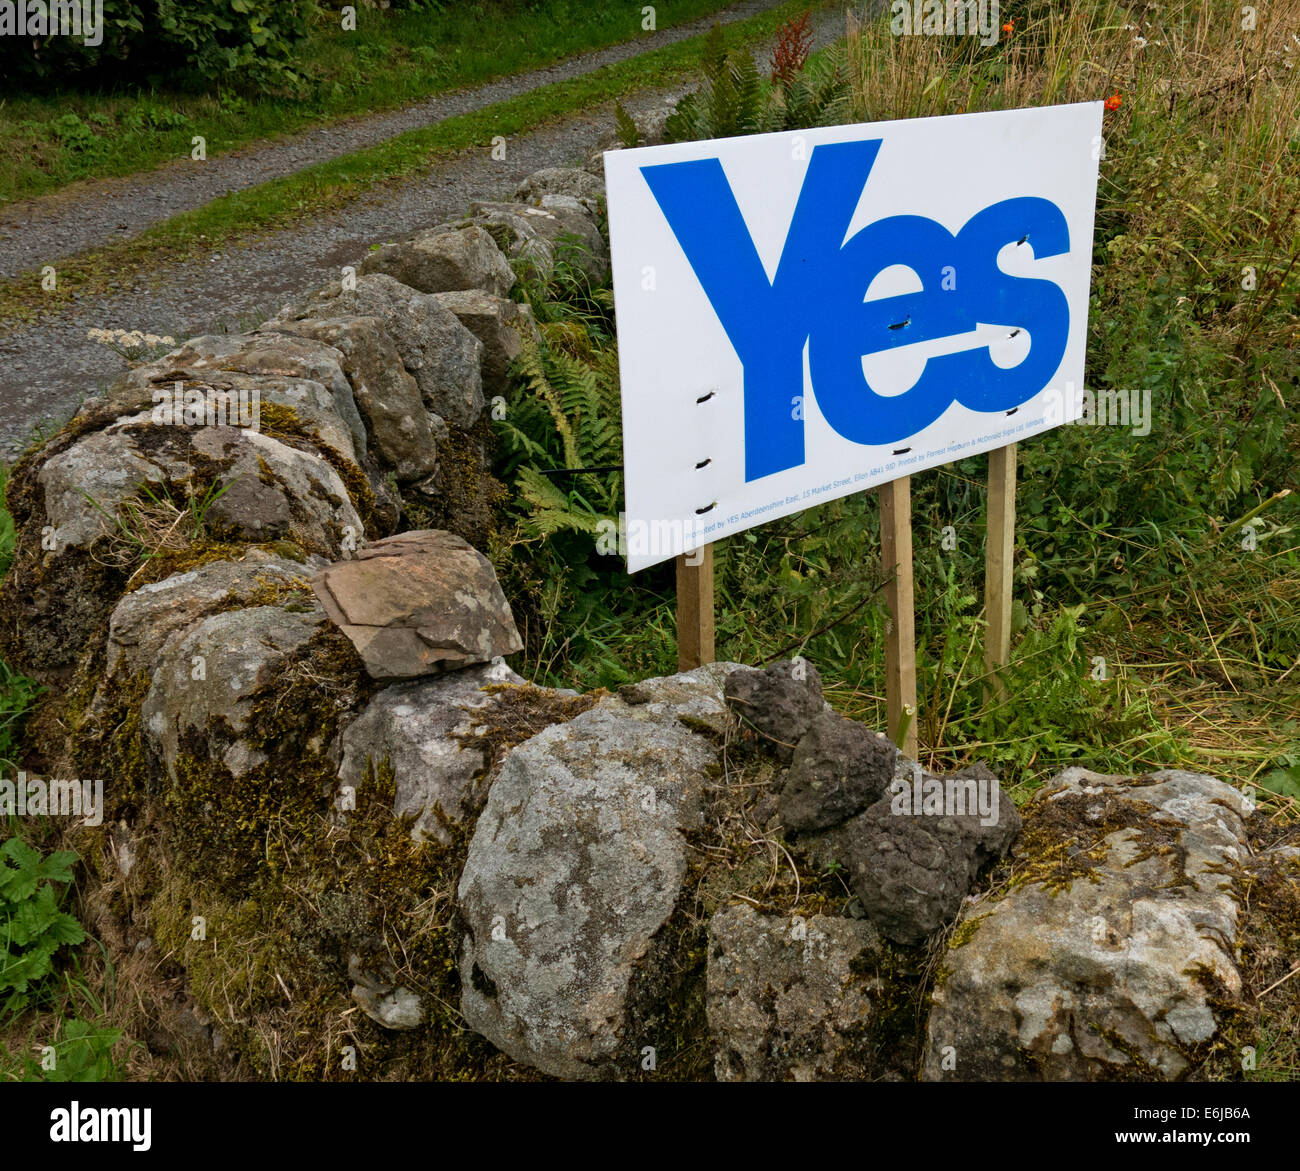 farm,Carlops,Scottish Borders,Scotland,September,2014,sunny,day,passion,to,govern,their,own,nation,country,independance,feeling,vote,voting,referenda,referendum,catalonia,spain,break,breakup,up,of,the,UK,GB,great,Britain,British,gotonysmith indyref #indyref,Scottish,SNP,independance party,independence,indyref,referendum,2nd,second,Brexit,#Brexit,hotpixuk,@hotpixuk,Buy Pictures of,Buy Images Of